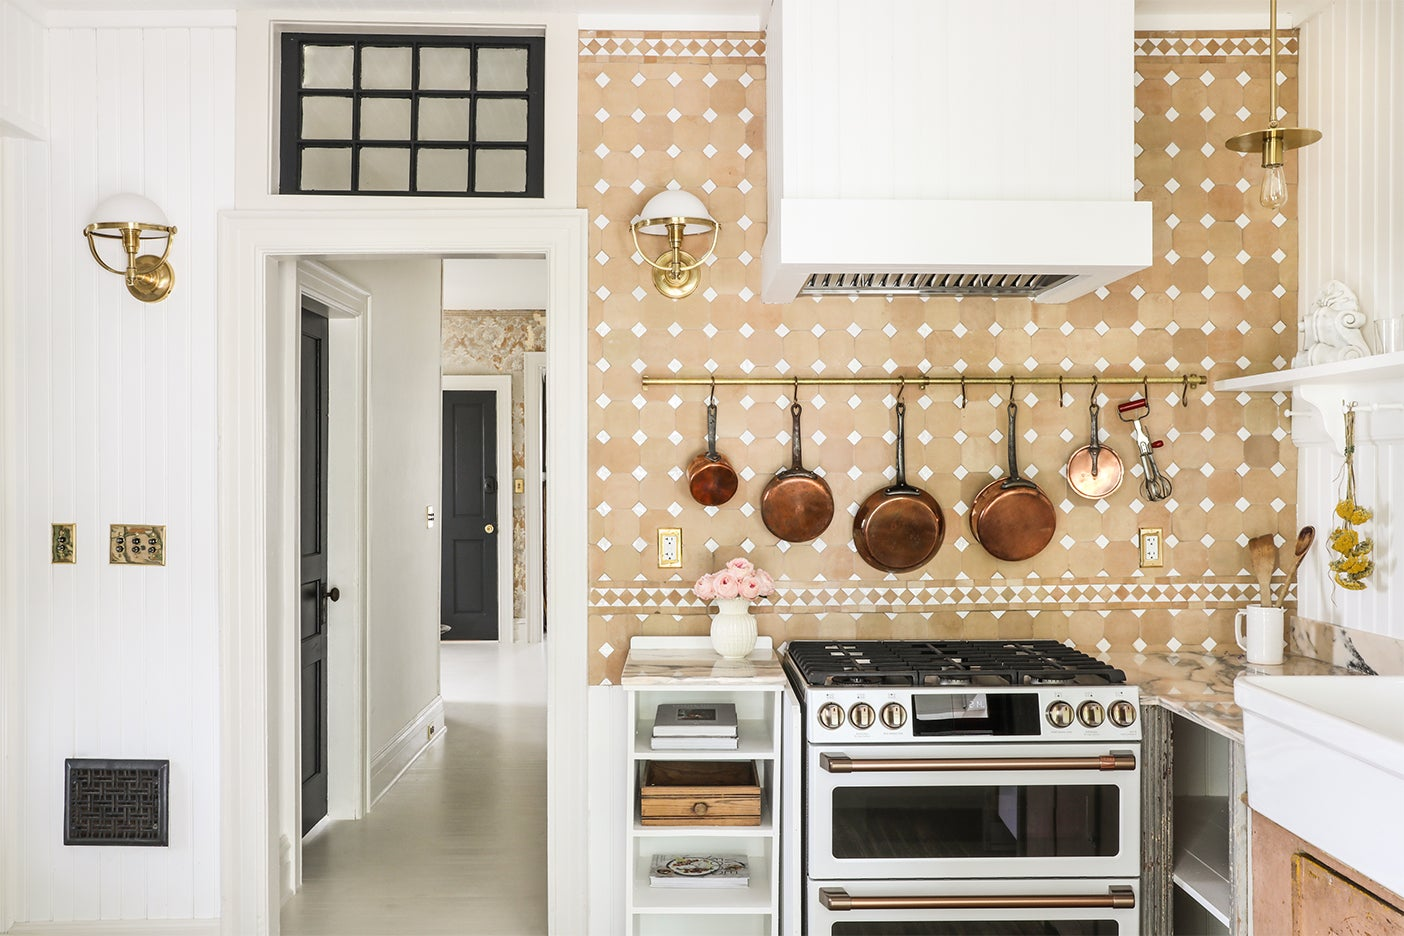 terracotta kitchen with copper pans above oven